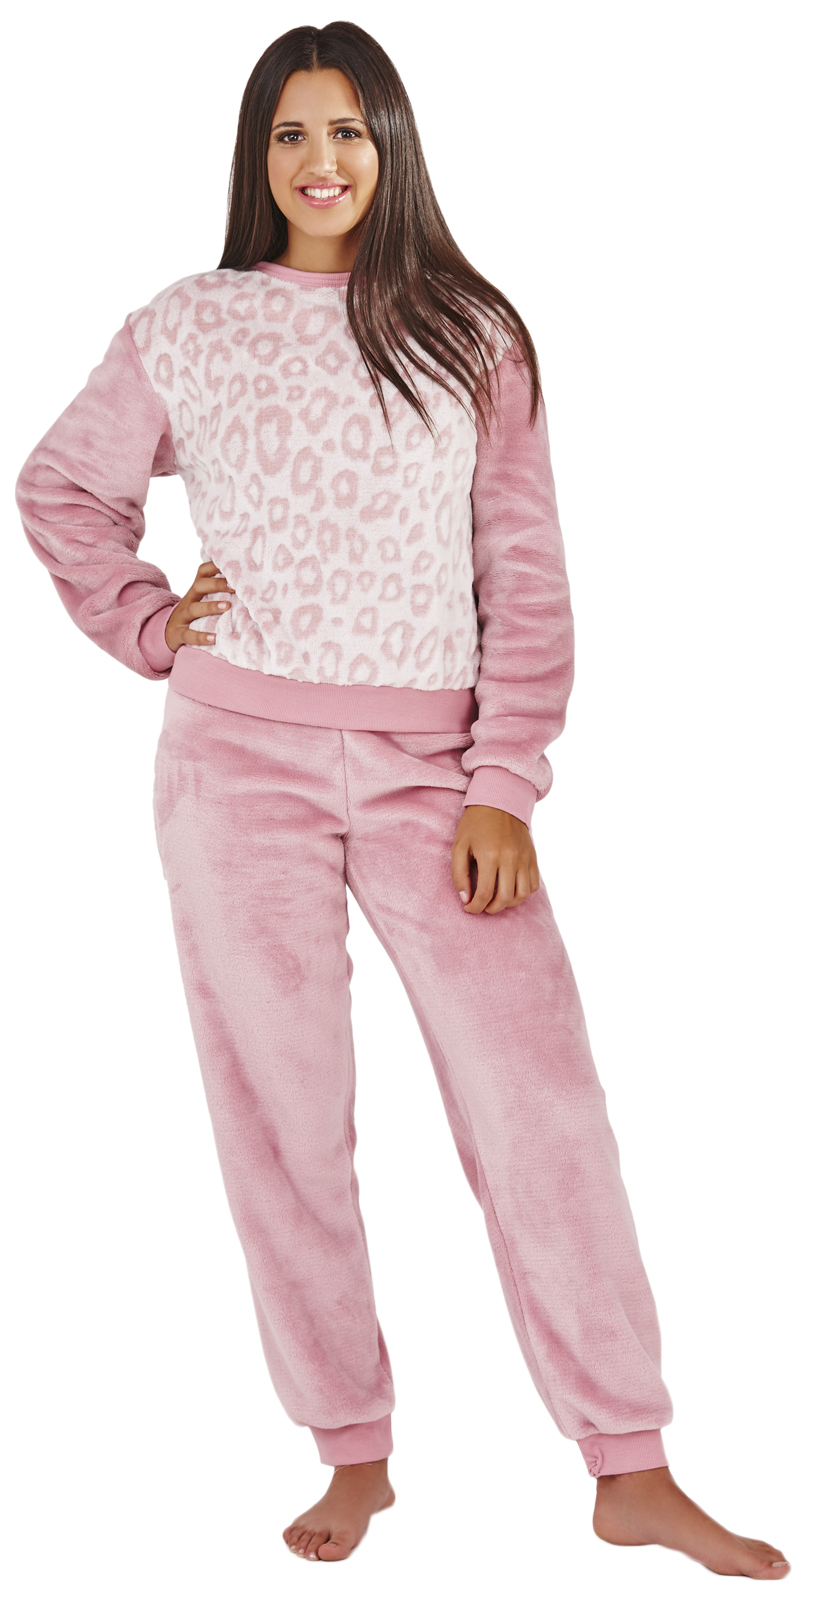 Fleece Pant Sets for Women